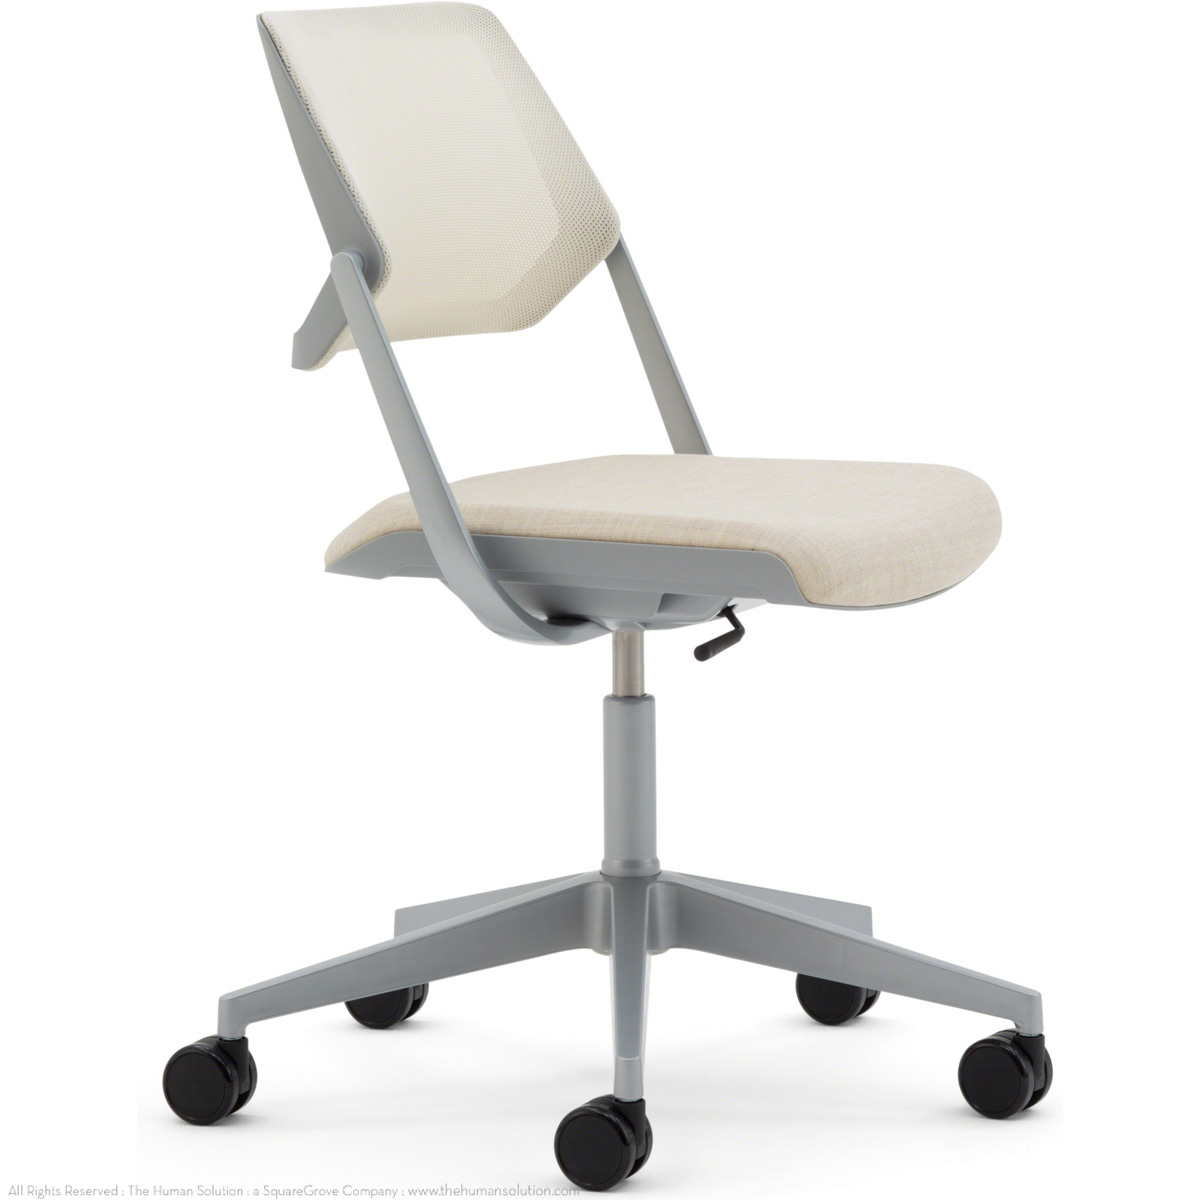 Steelcase Chairs Steelcase Qivi Collaboration Chair Shop Steelcase Office